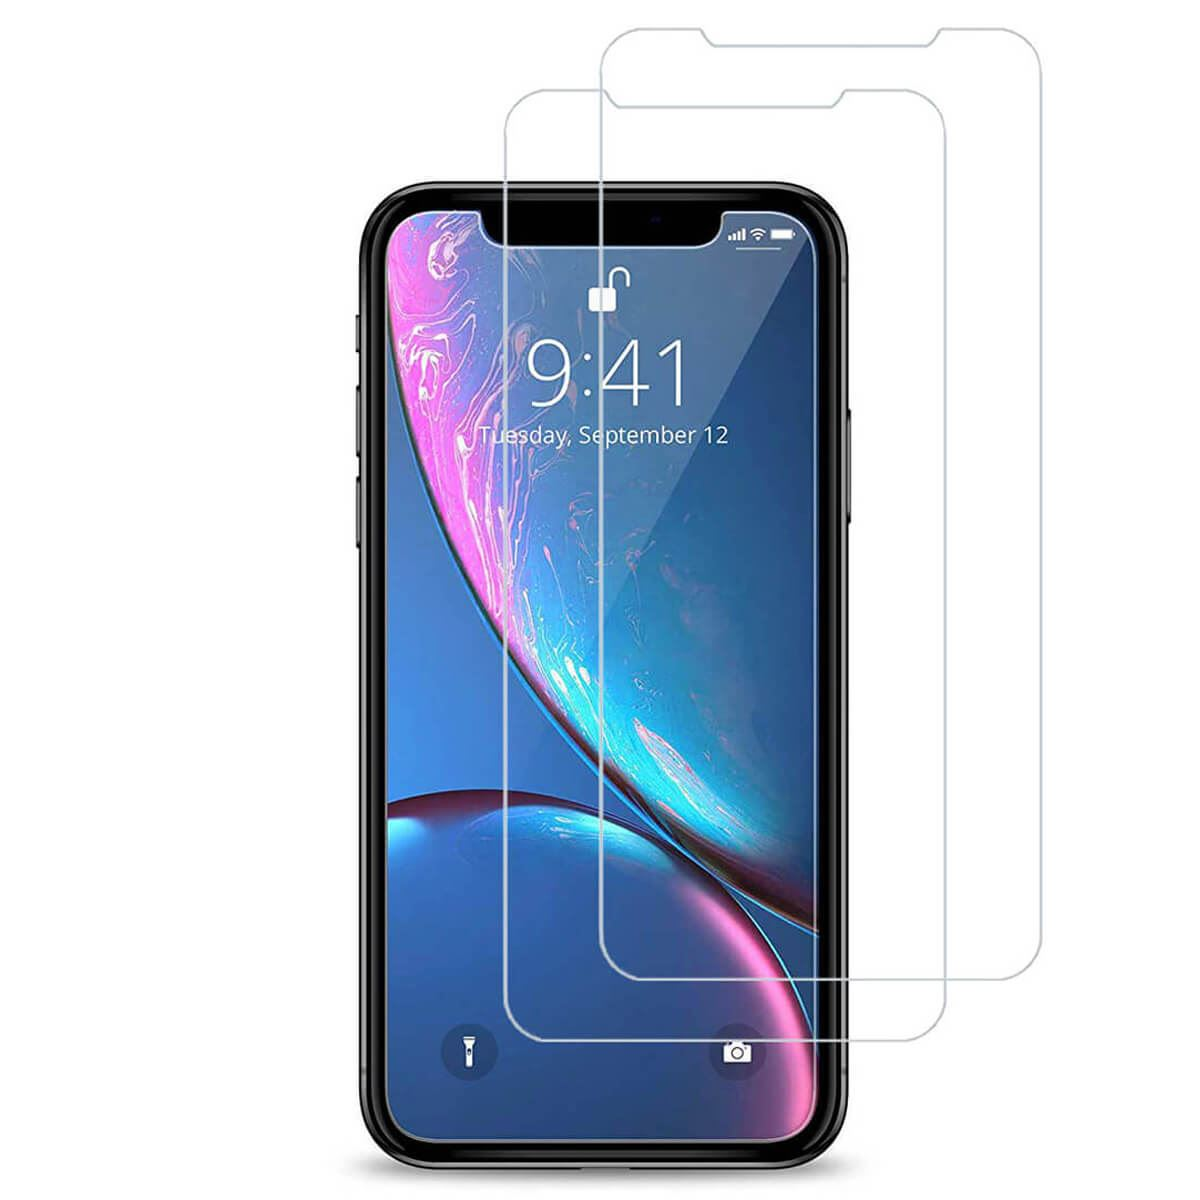 Tempered-Glass-Film-Screen-Protector-For-iPhone-12-Pro-Max-Mini-XR-XS-Max-8-7-6s thumbnail 62